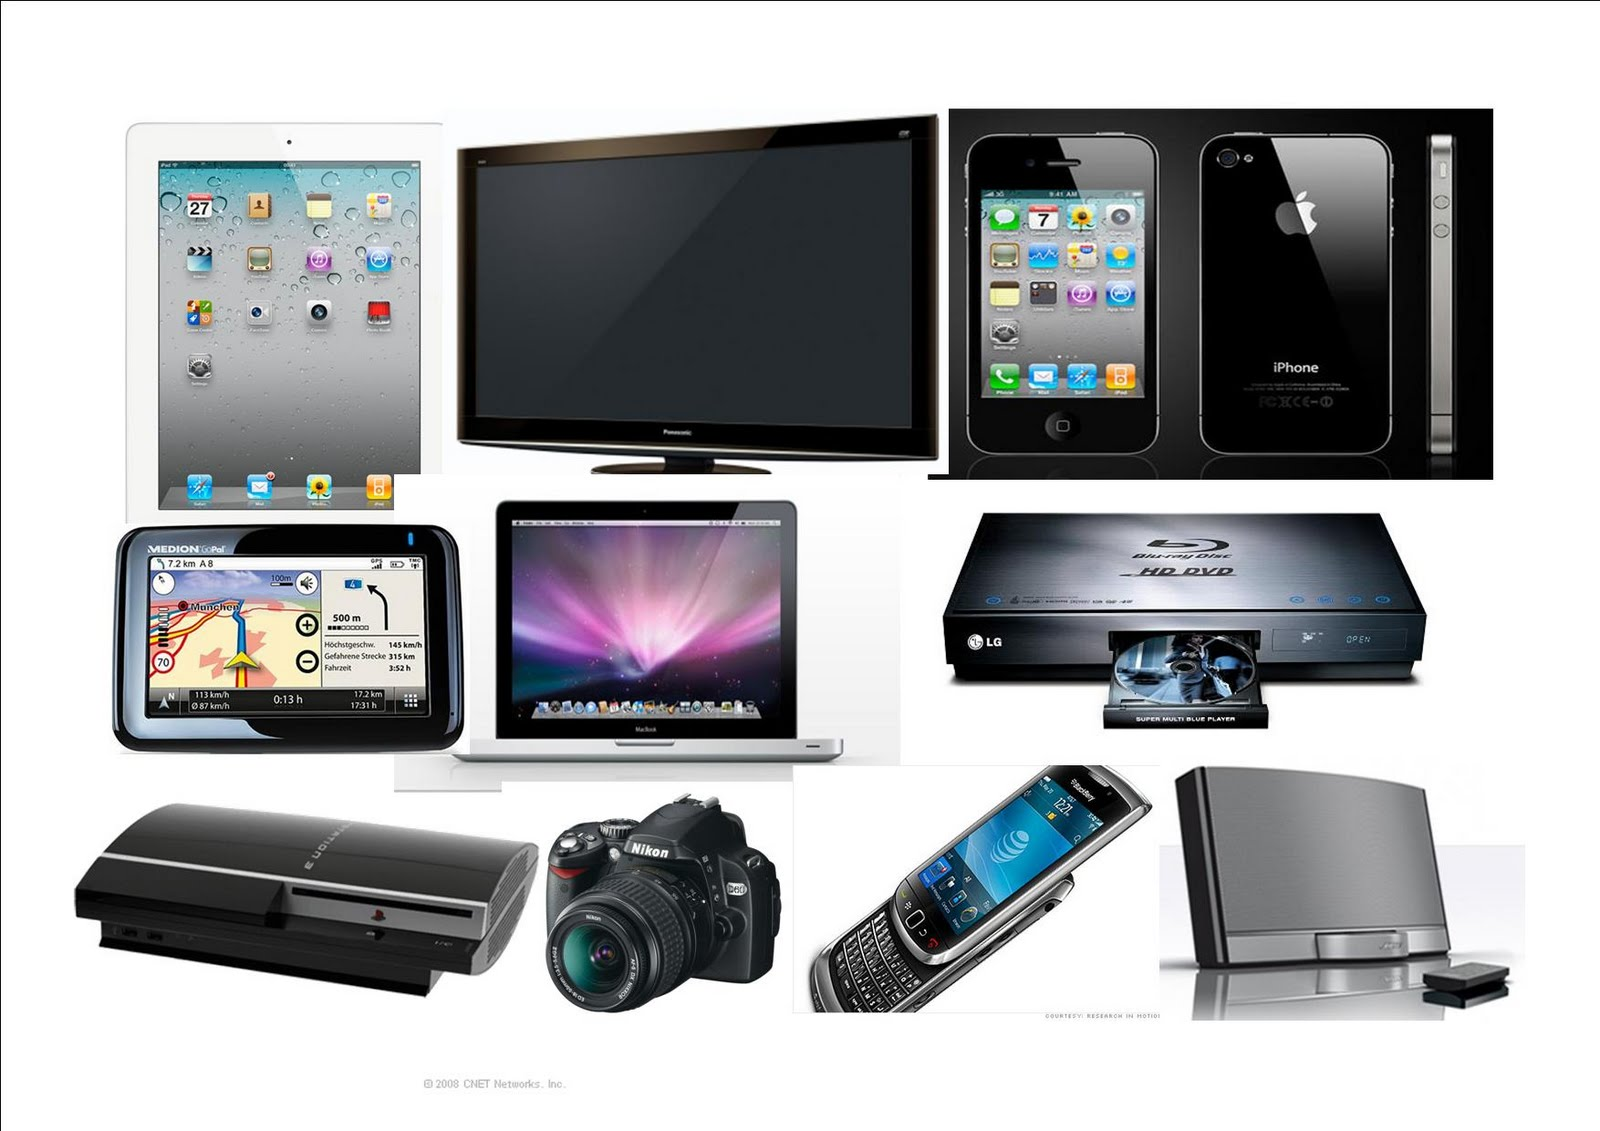 gadgets technology tech gifts perfect technological digital android app businessman them frames